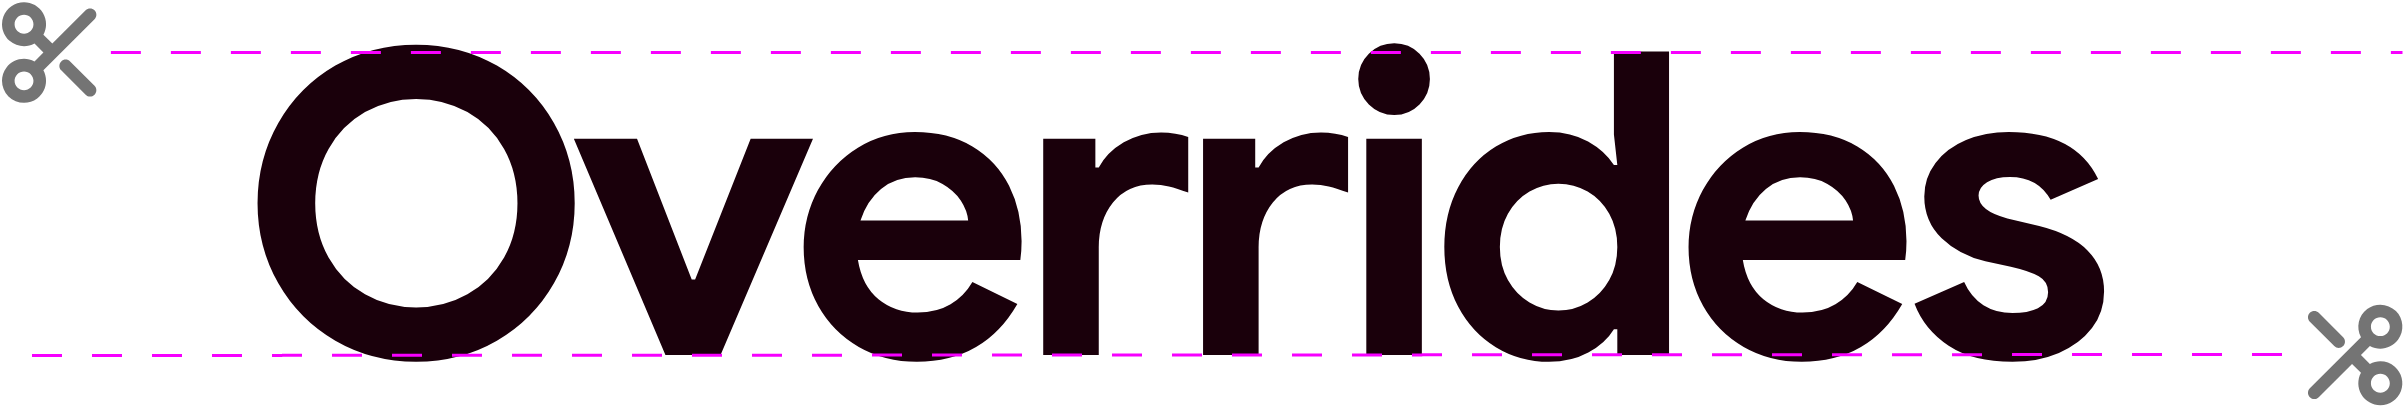 scissors above and blow the word overrides, demonstrating the areas the features can trim to